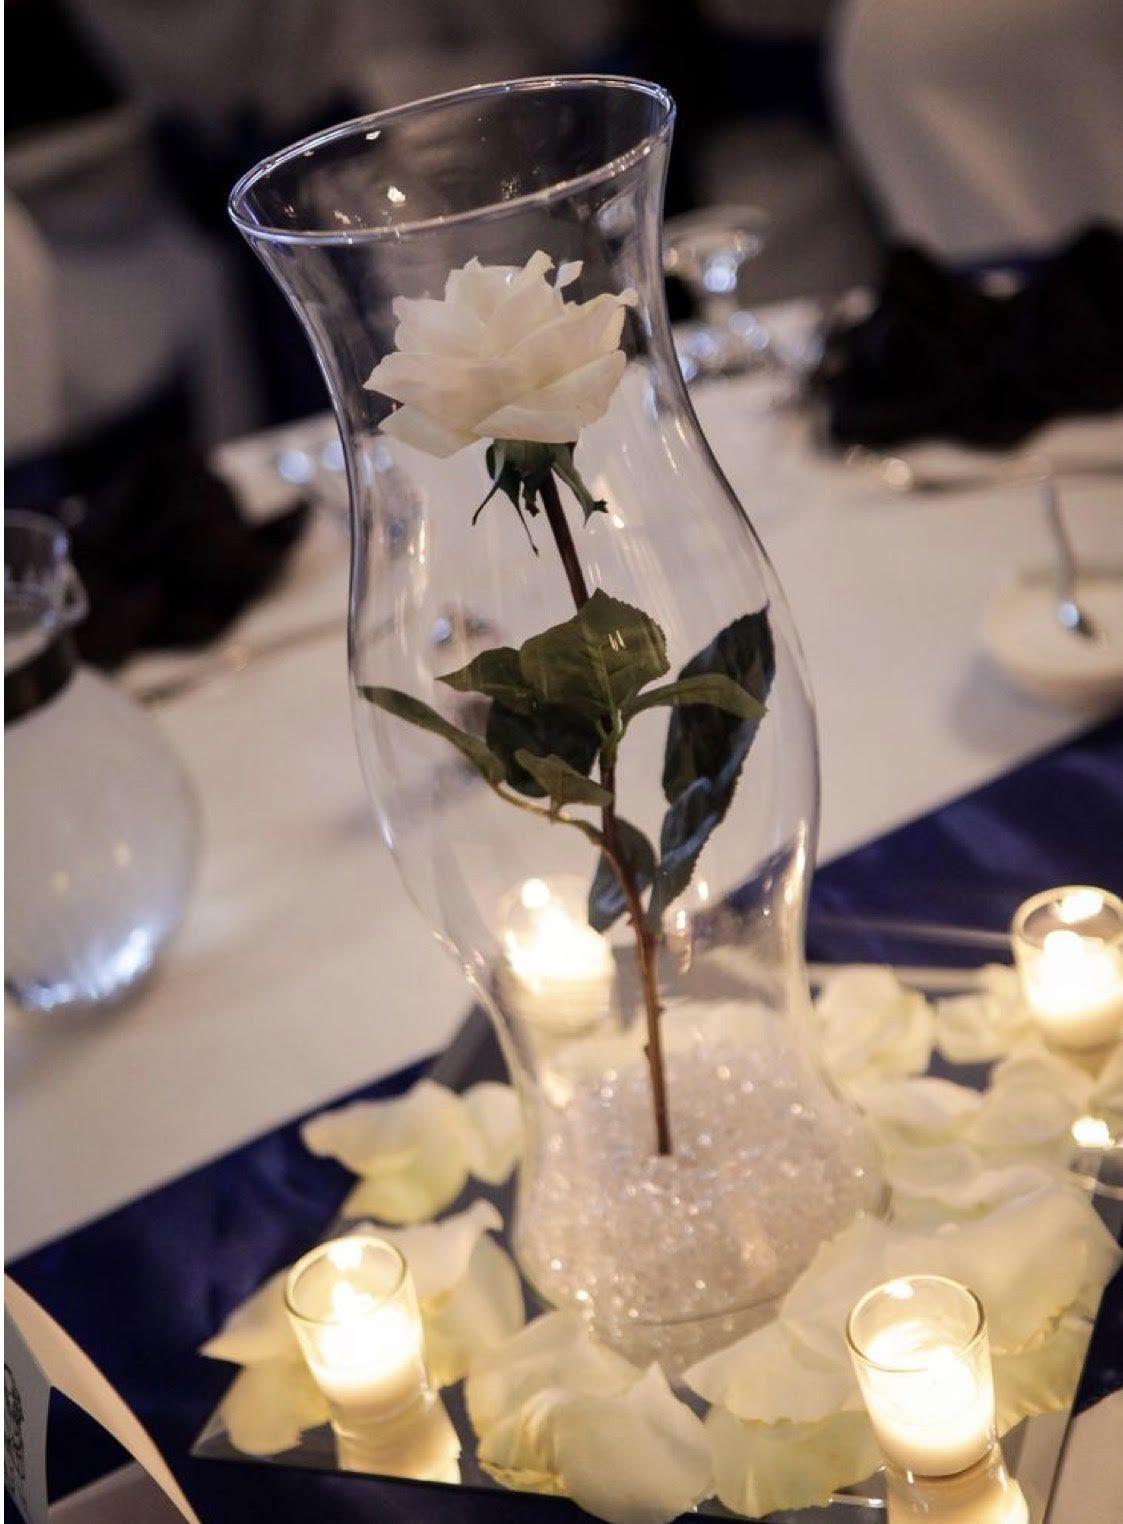 Pin by courtney chase on wedding pinterest centerpieces single white long stem rose 16 inch hurricane vase royal blue sash and a few fresh white rose petals and some candles reviewsmspy